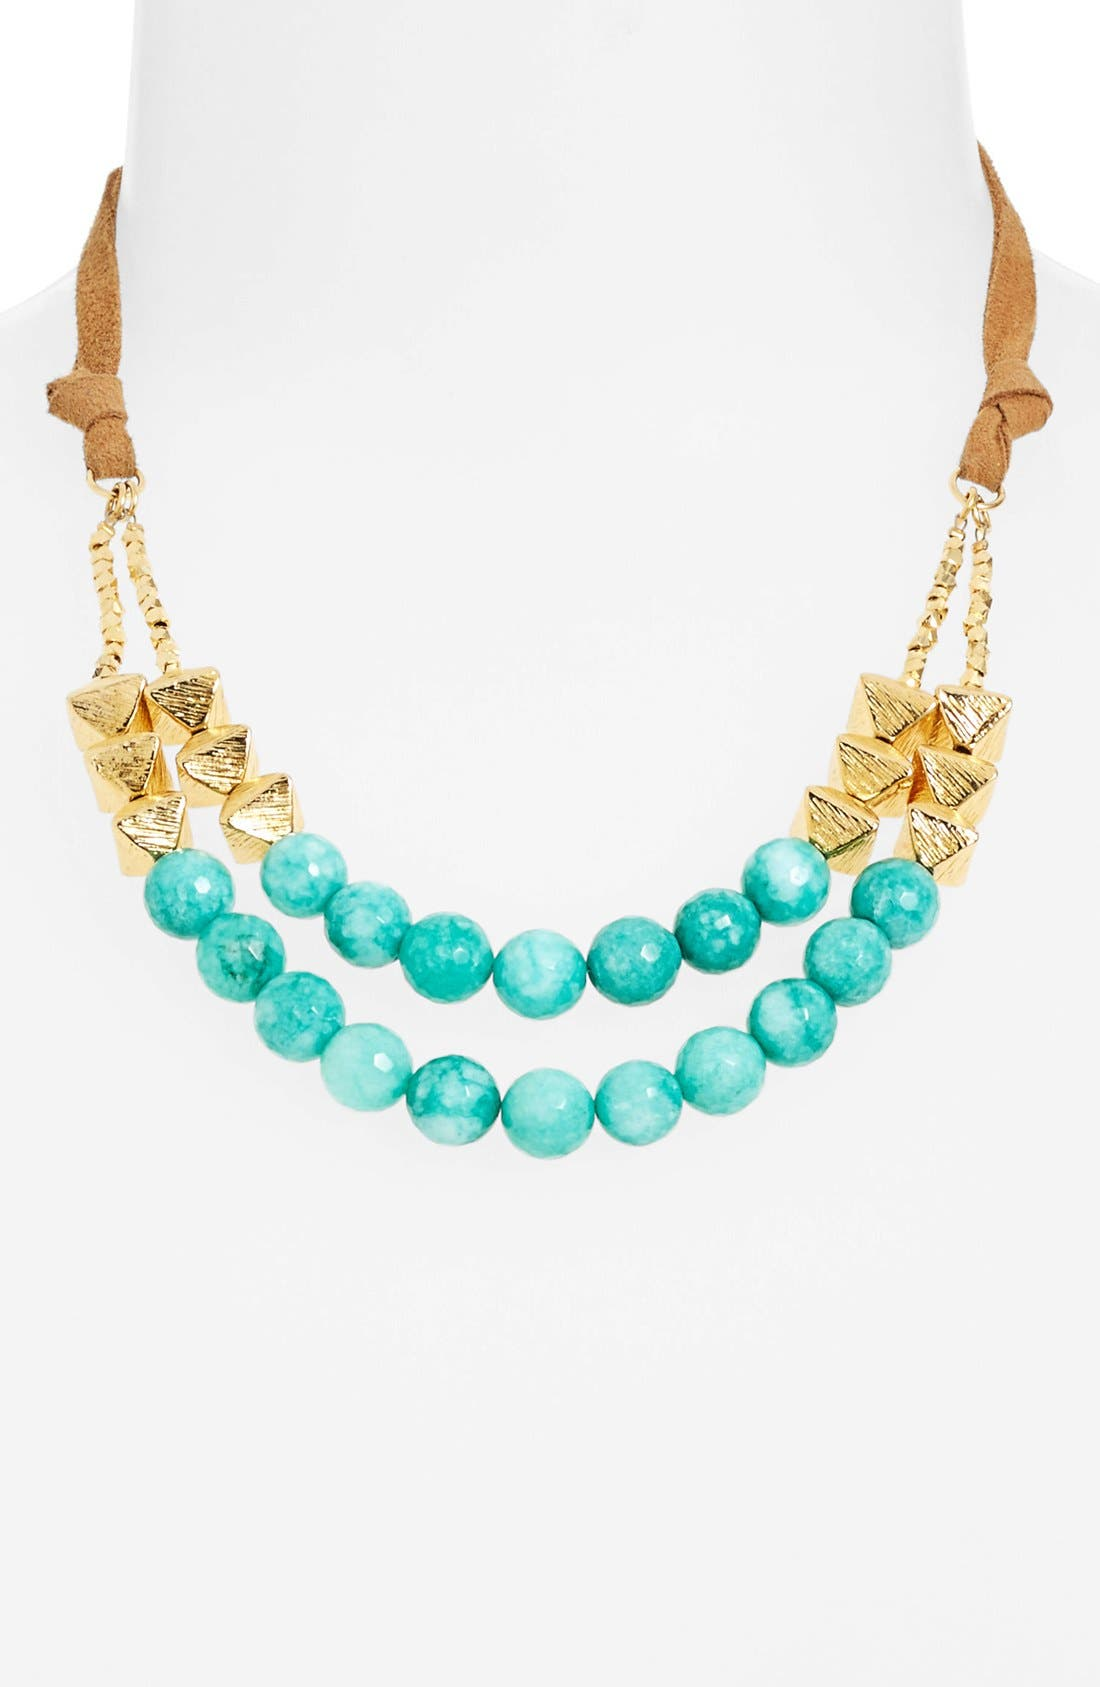 Main Image - Nordstrom 'Audrey' Beaded Necklace